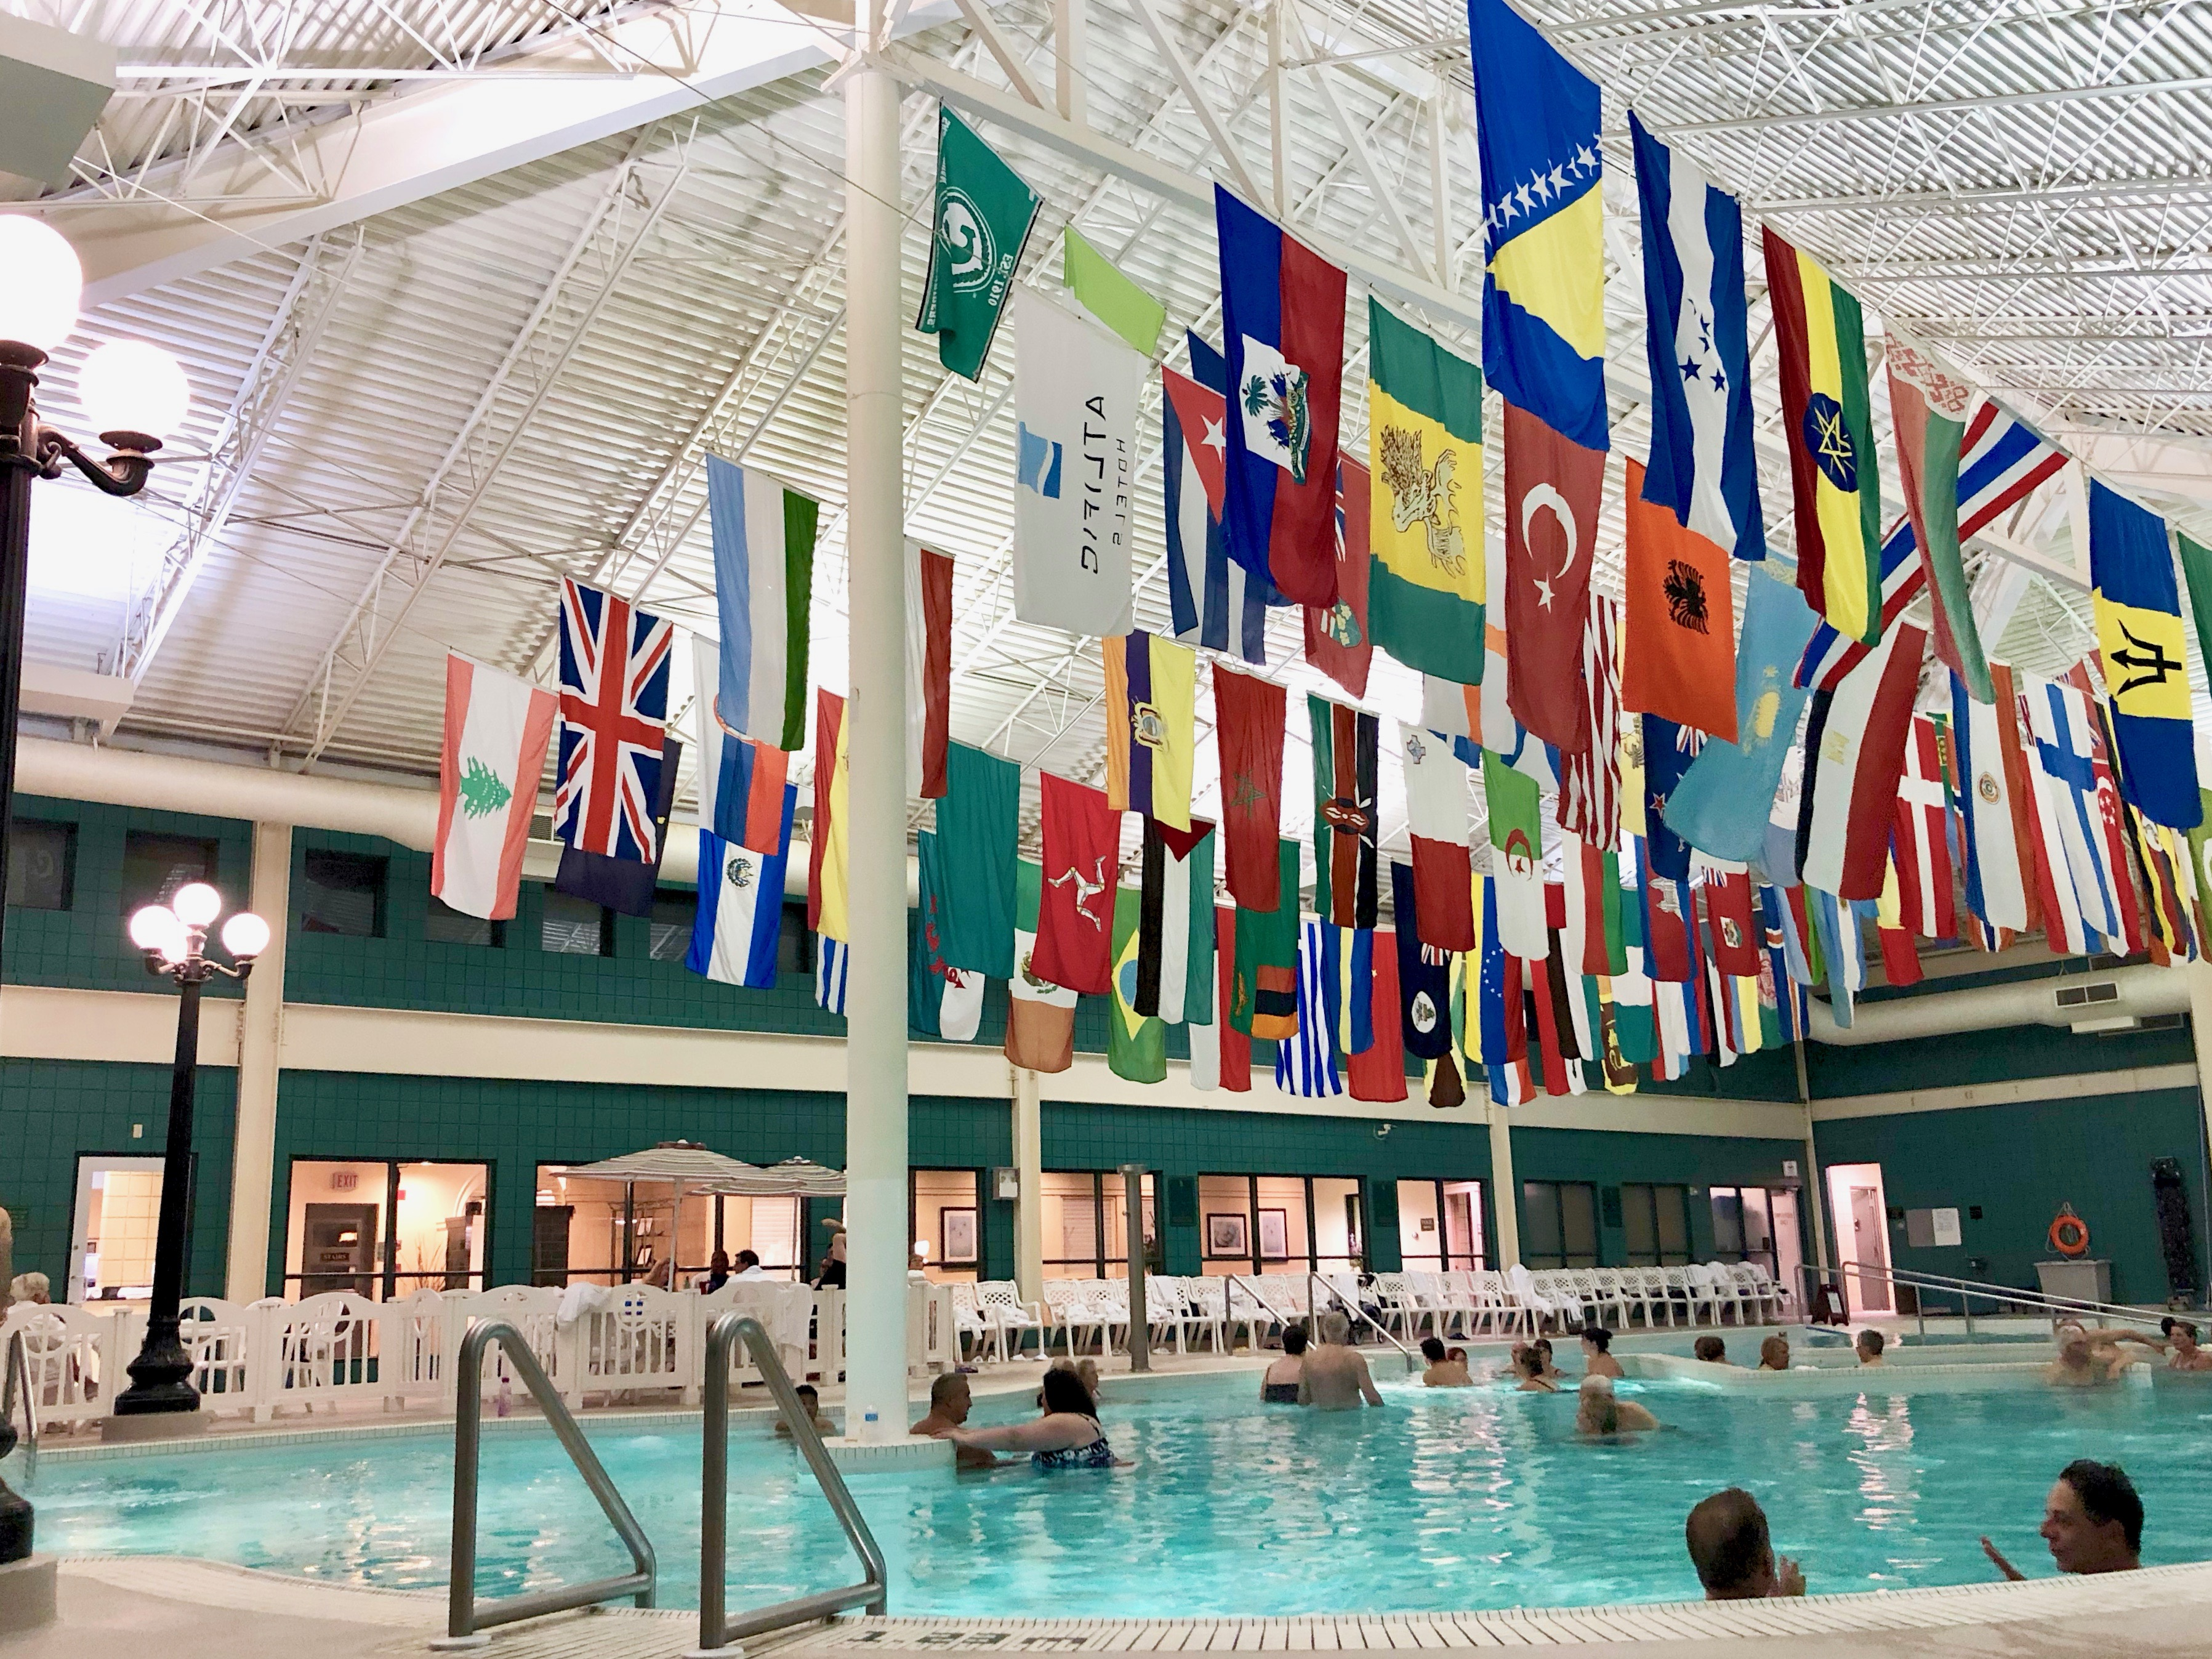 Moose Jaw, Saskatchewan, Canada, mineral pool, flags, international,